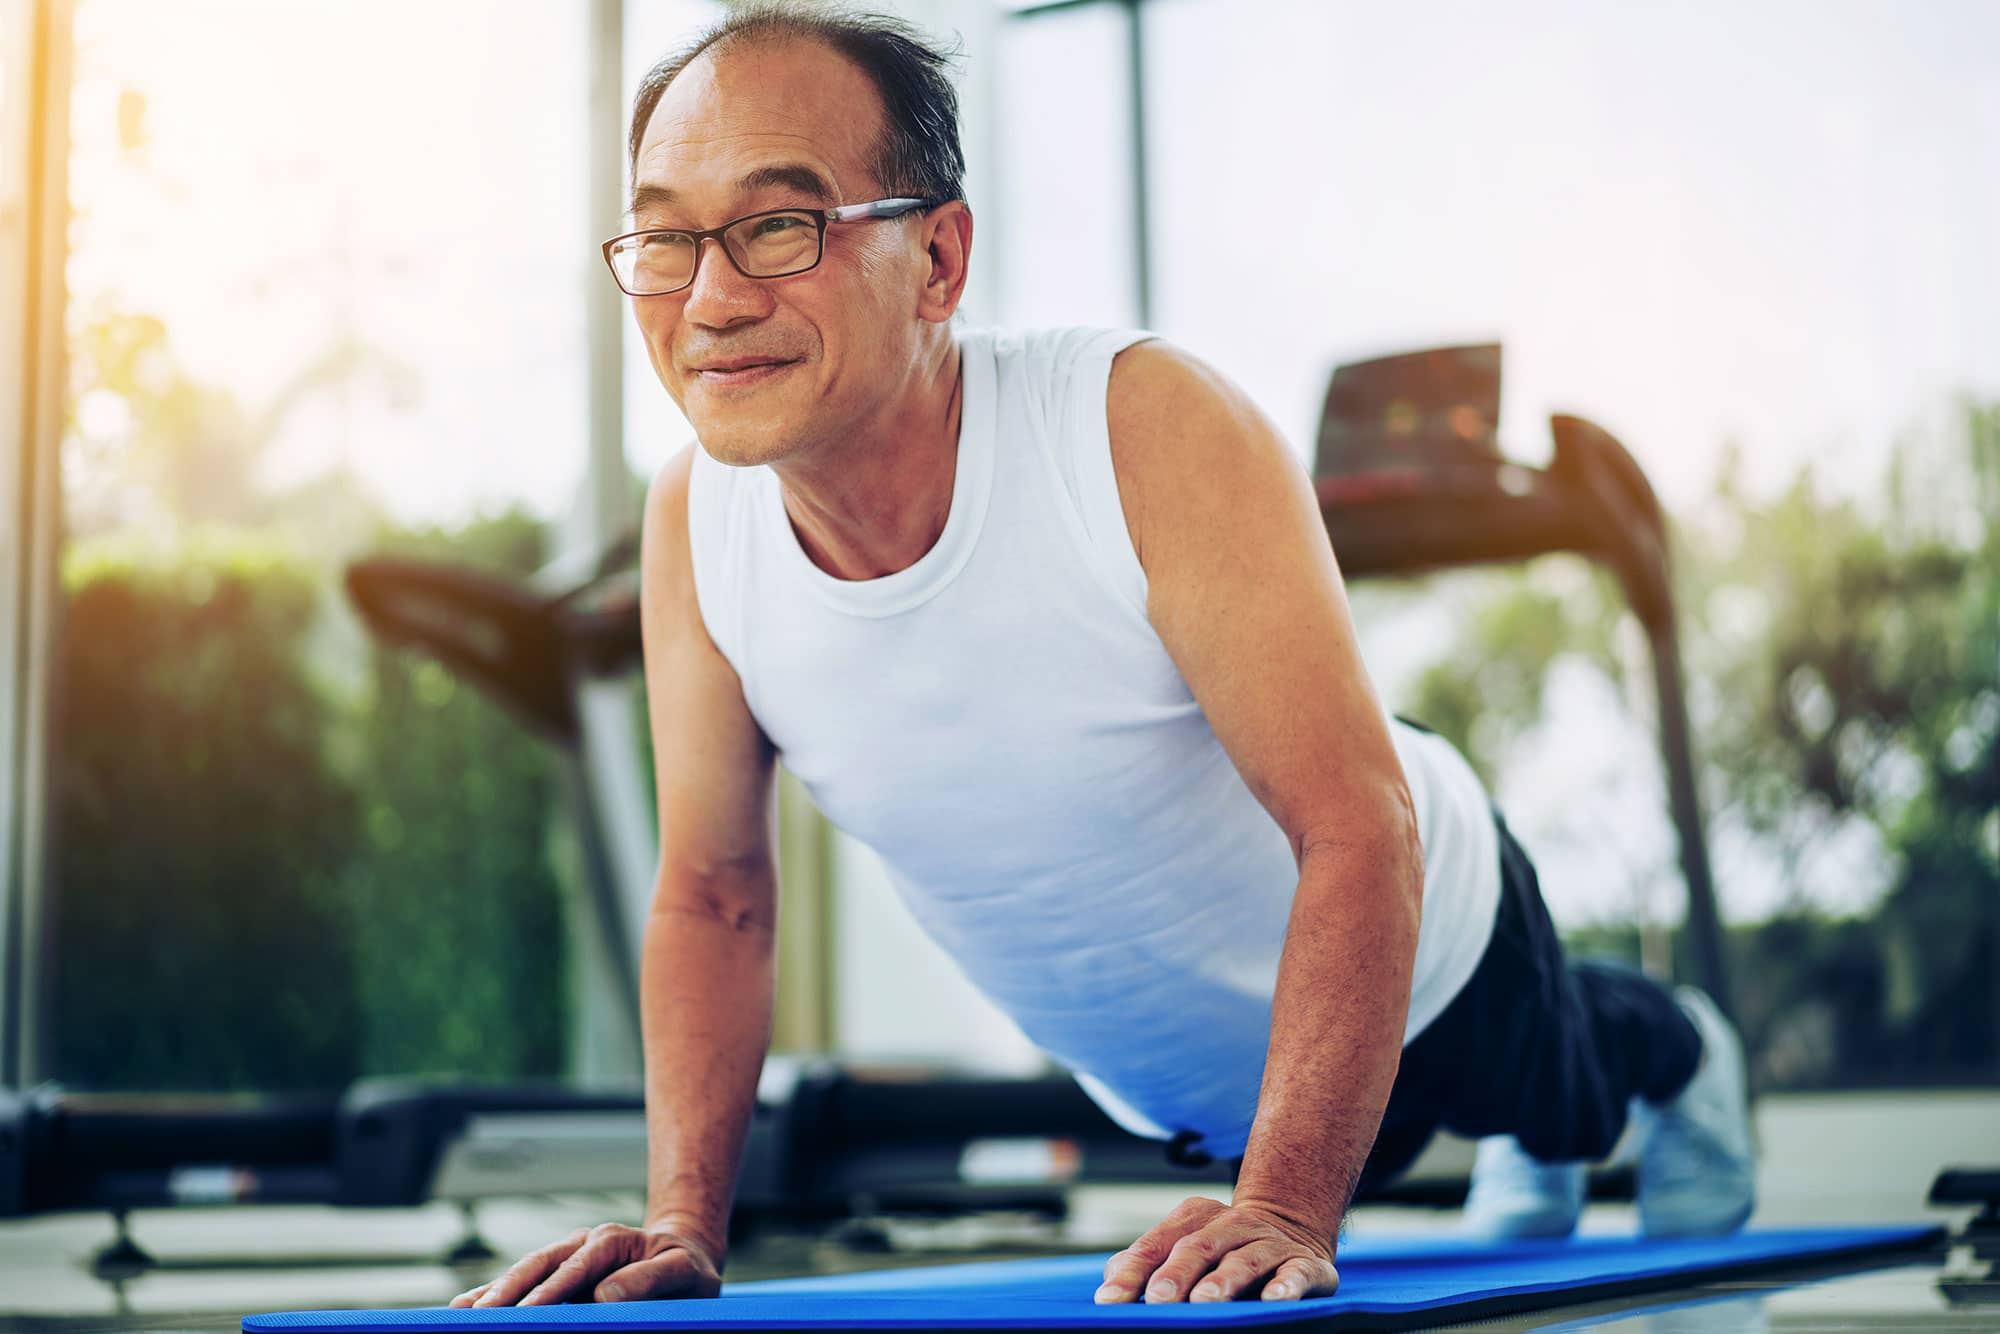 ukactive report sets out key role sector can play in getting our ageing nation active